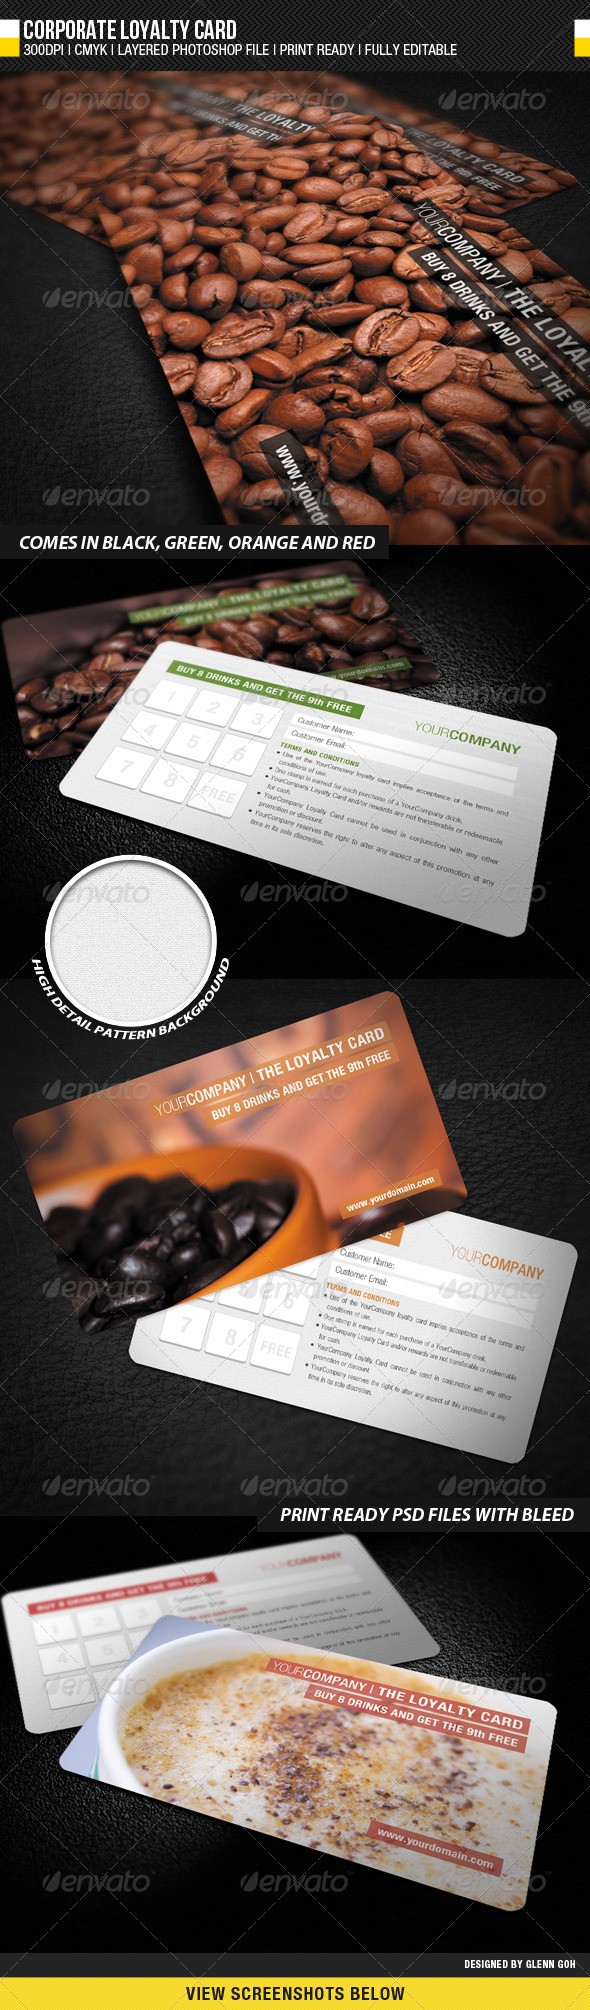 Corporate Loyalty Card